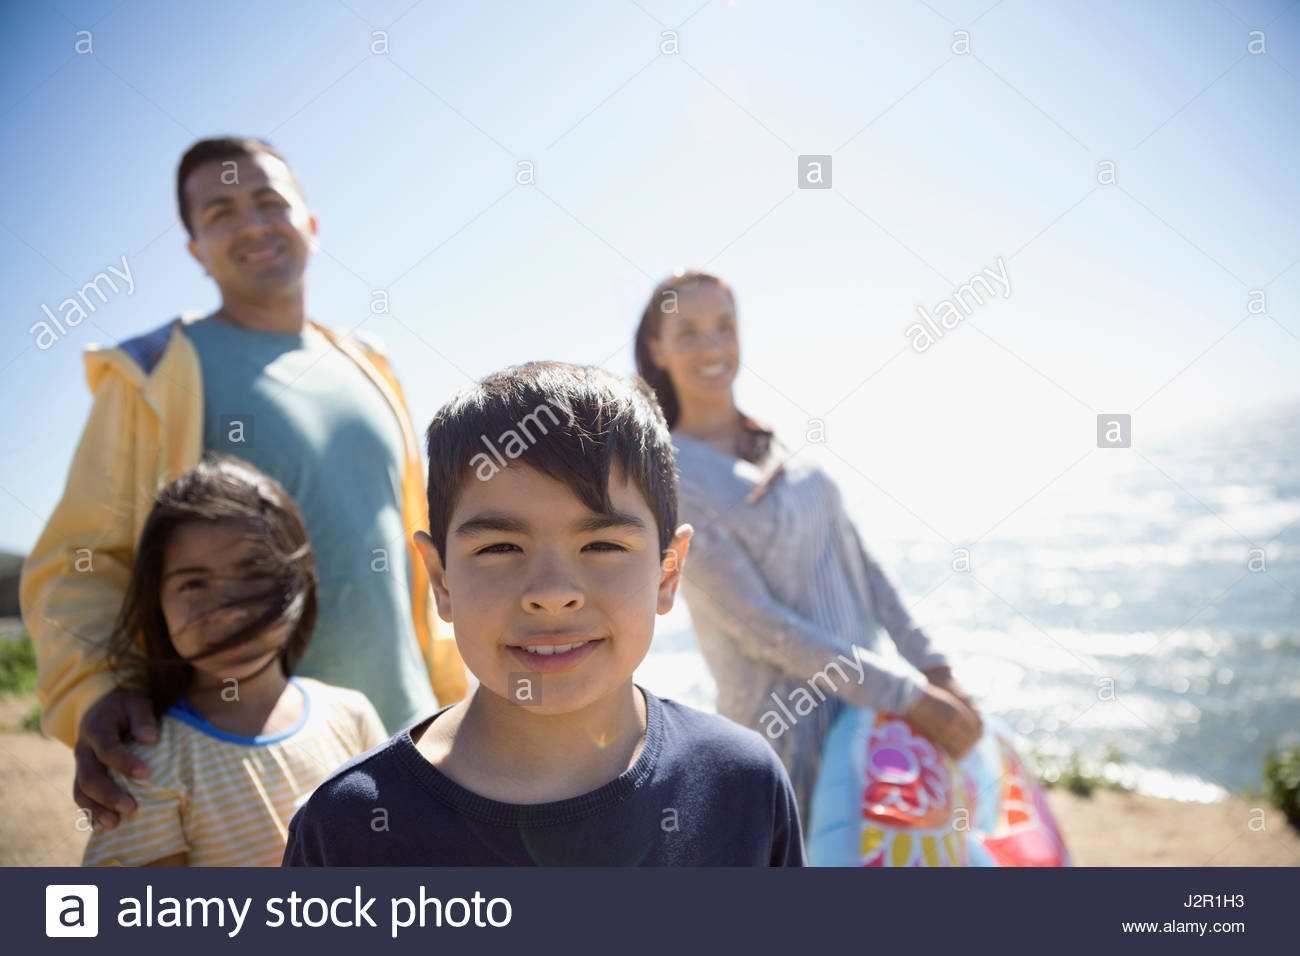 Portrait smiling Latino boy with family on sunny beach - Stock Image